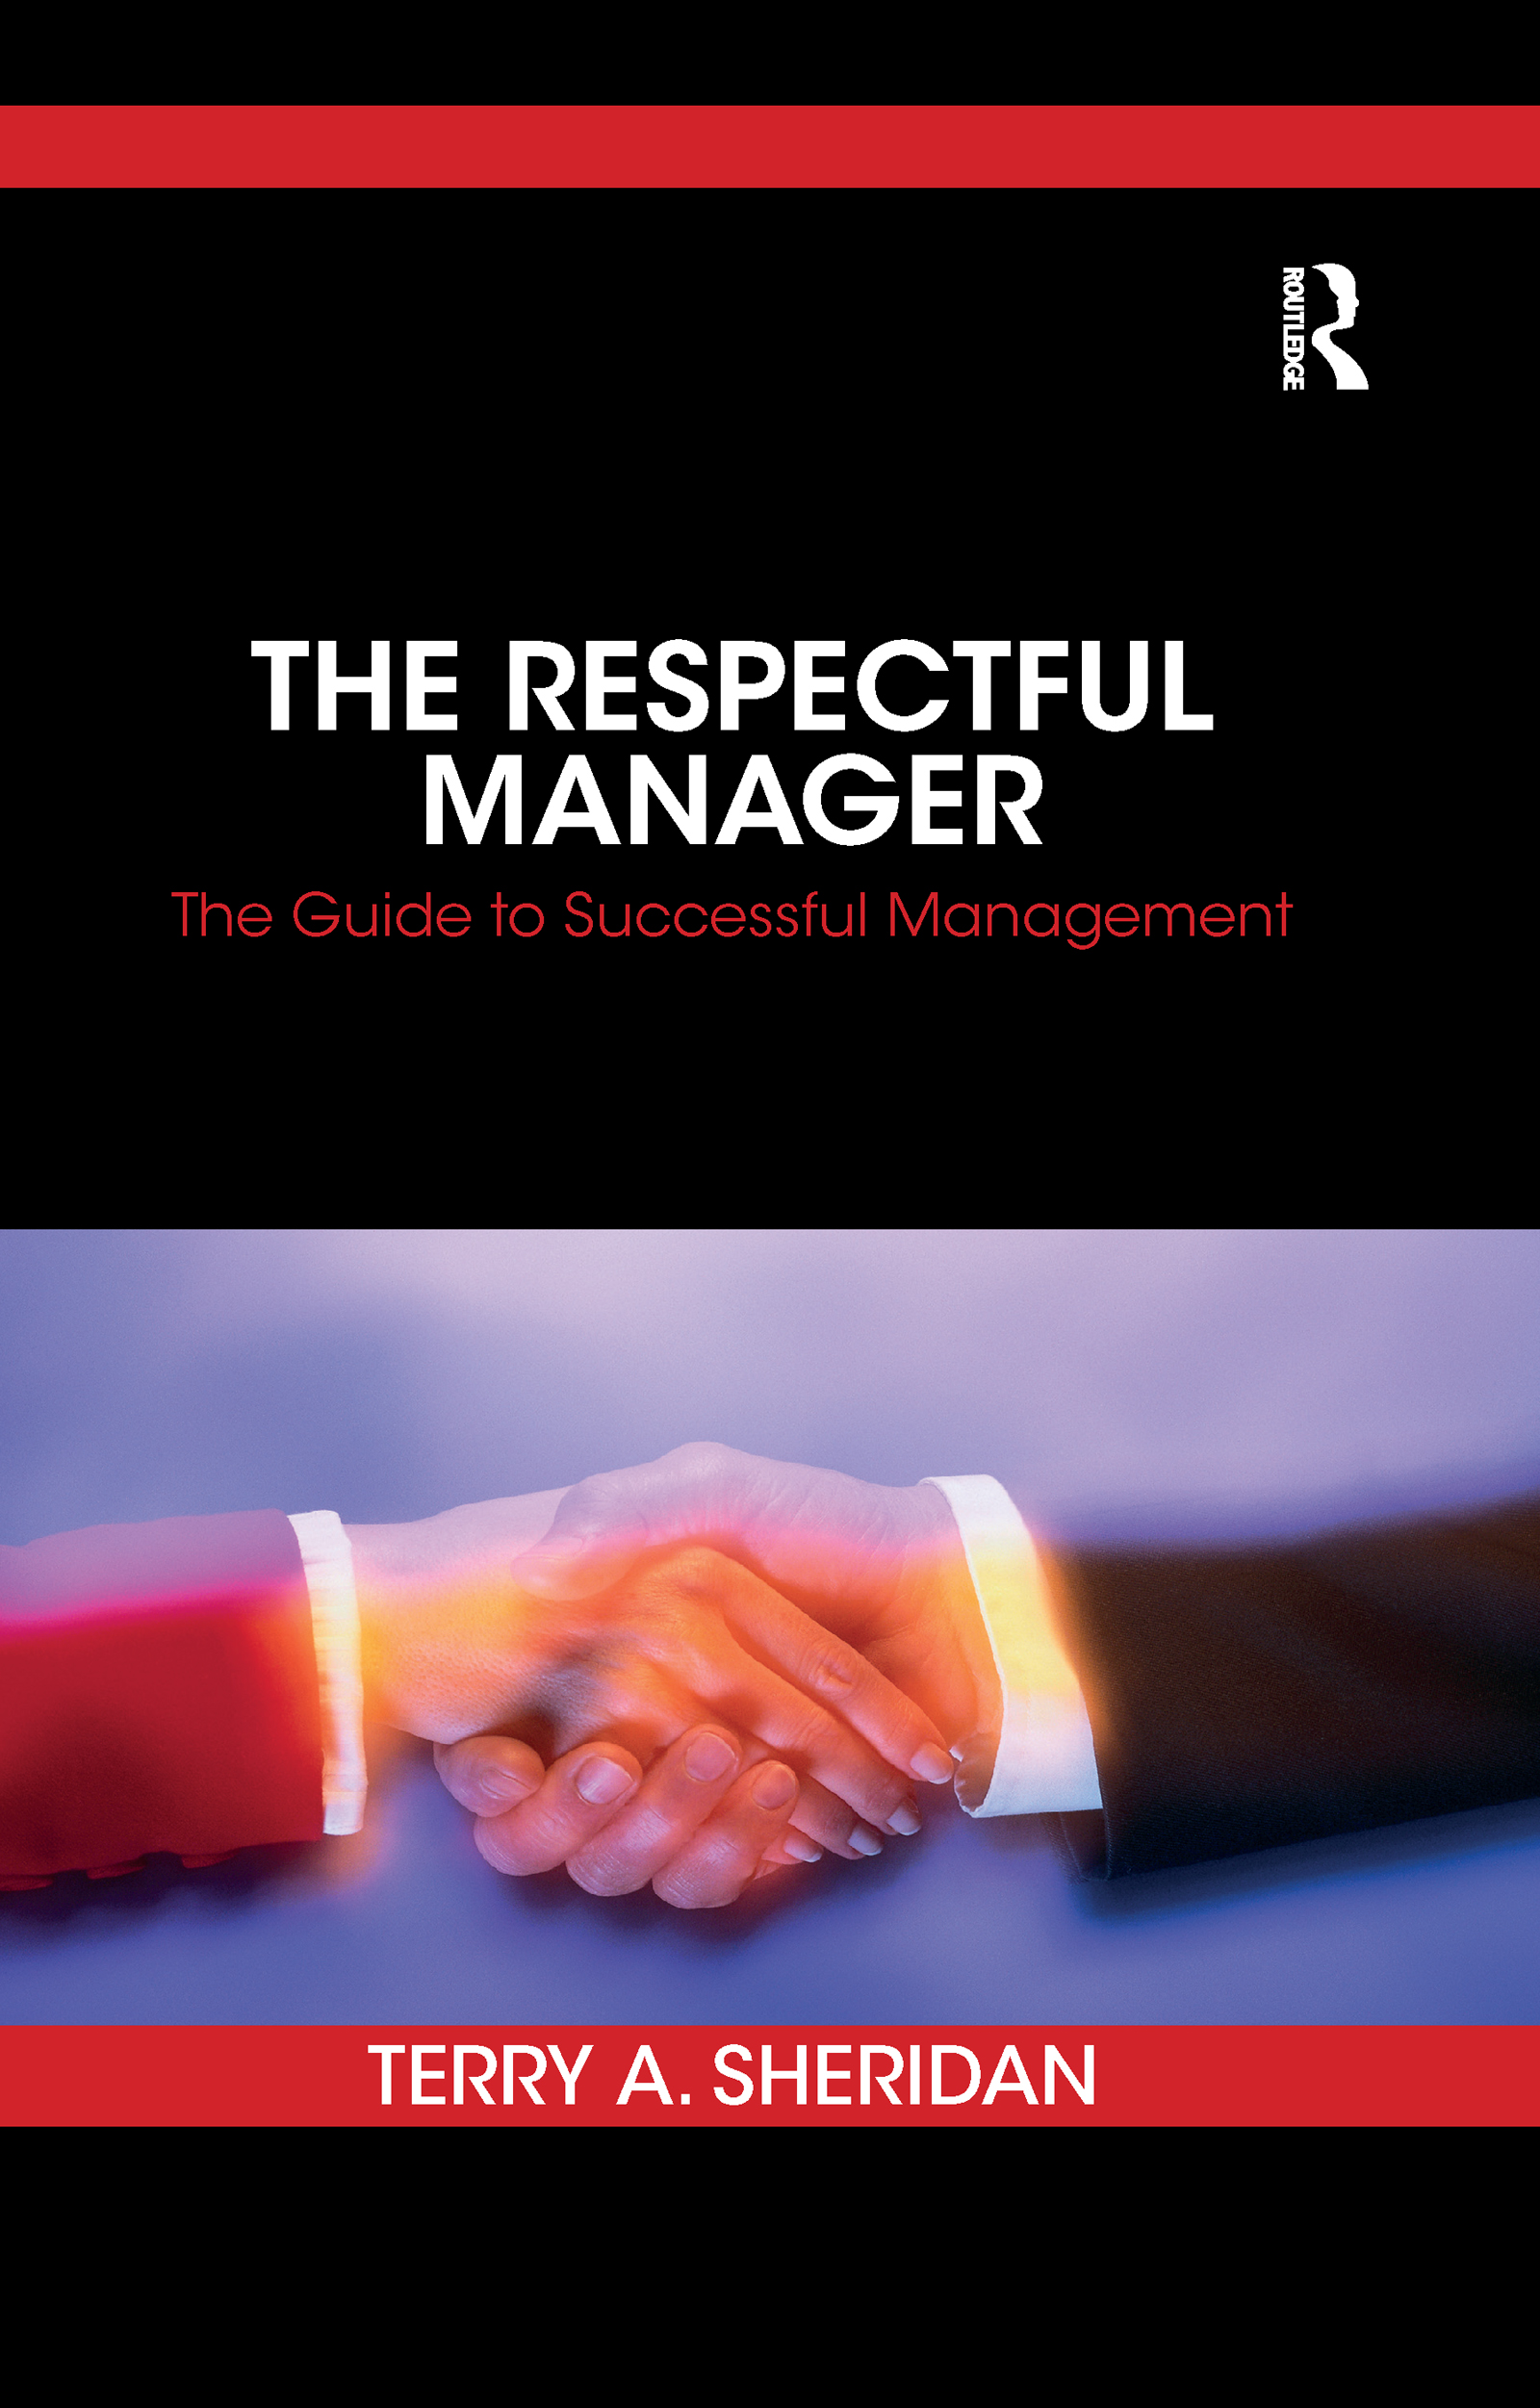 The Respectful Manager